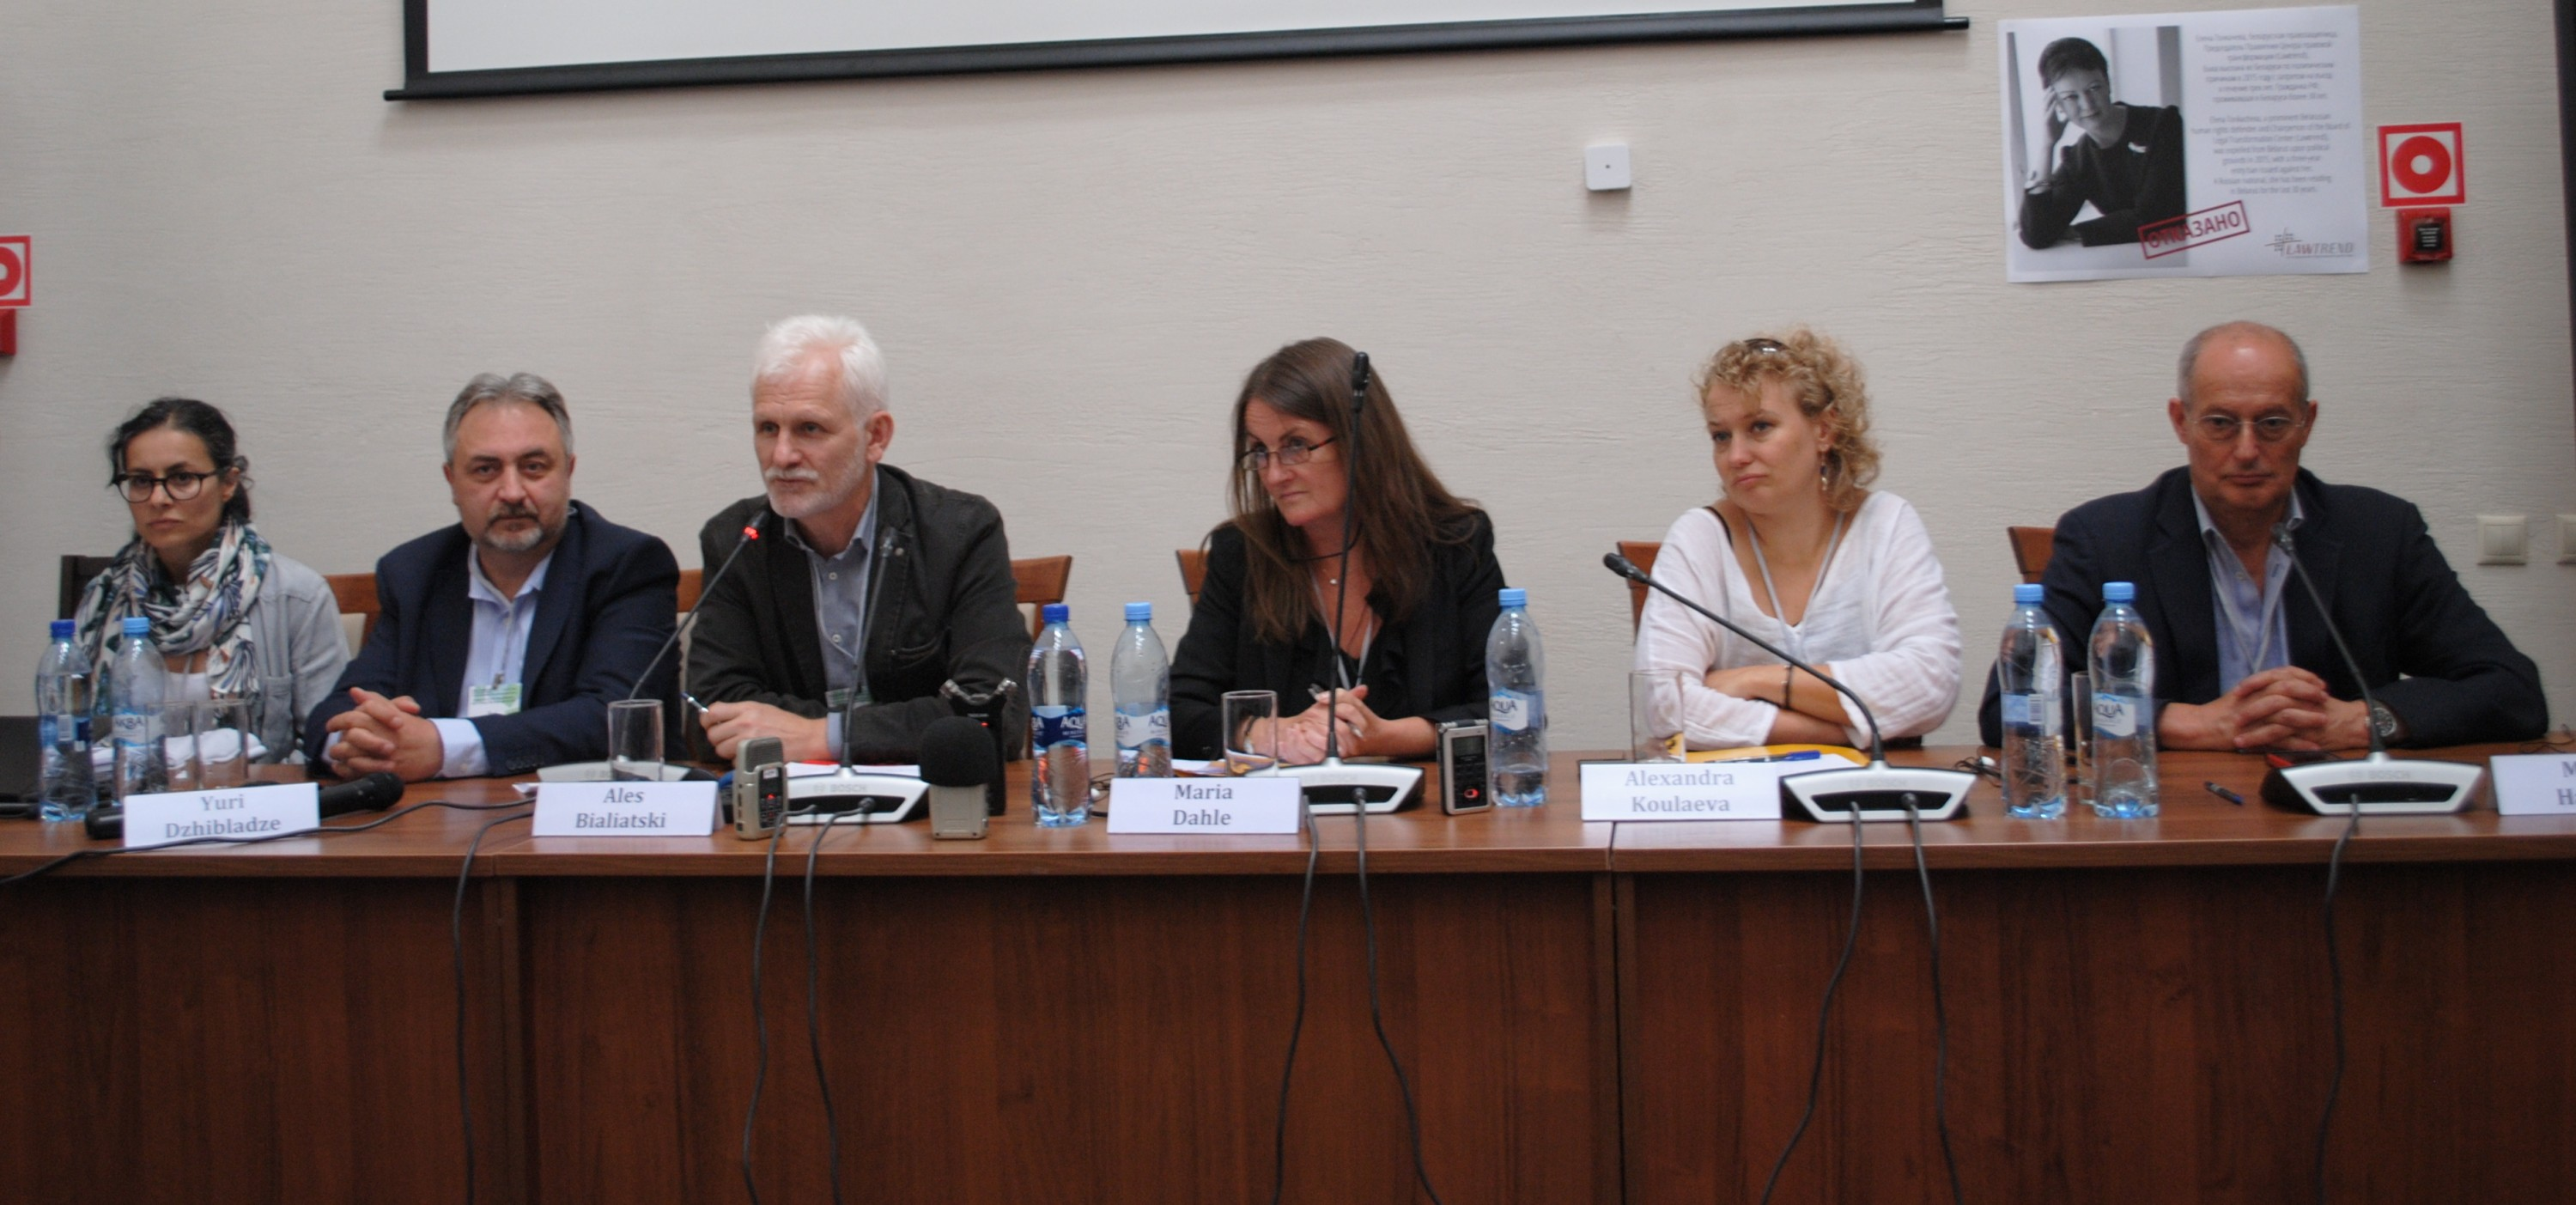 Briefing on July 4, in Minsk, during the Civil Society Parallel Forum